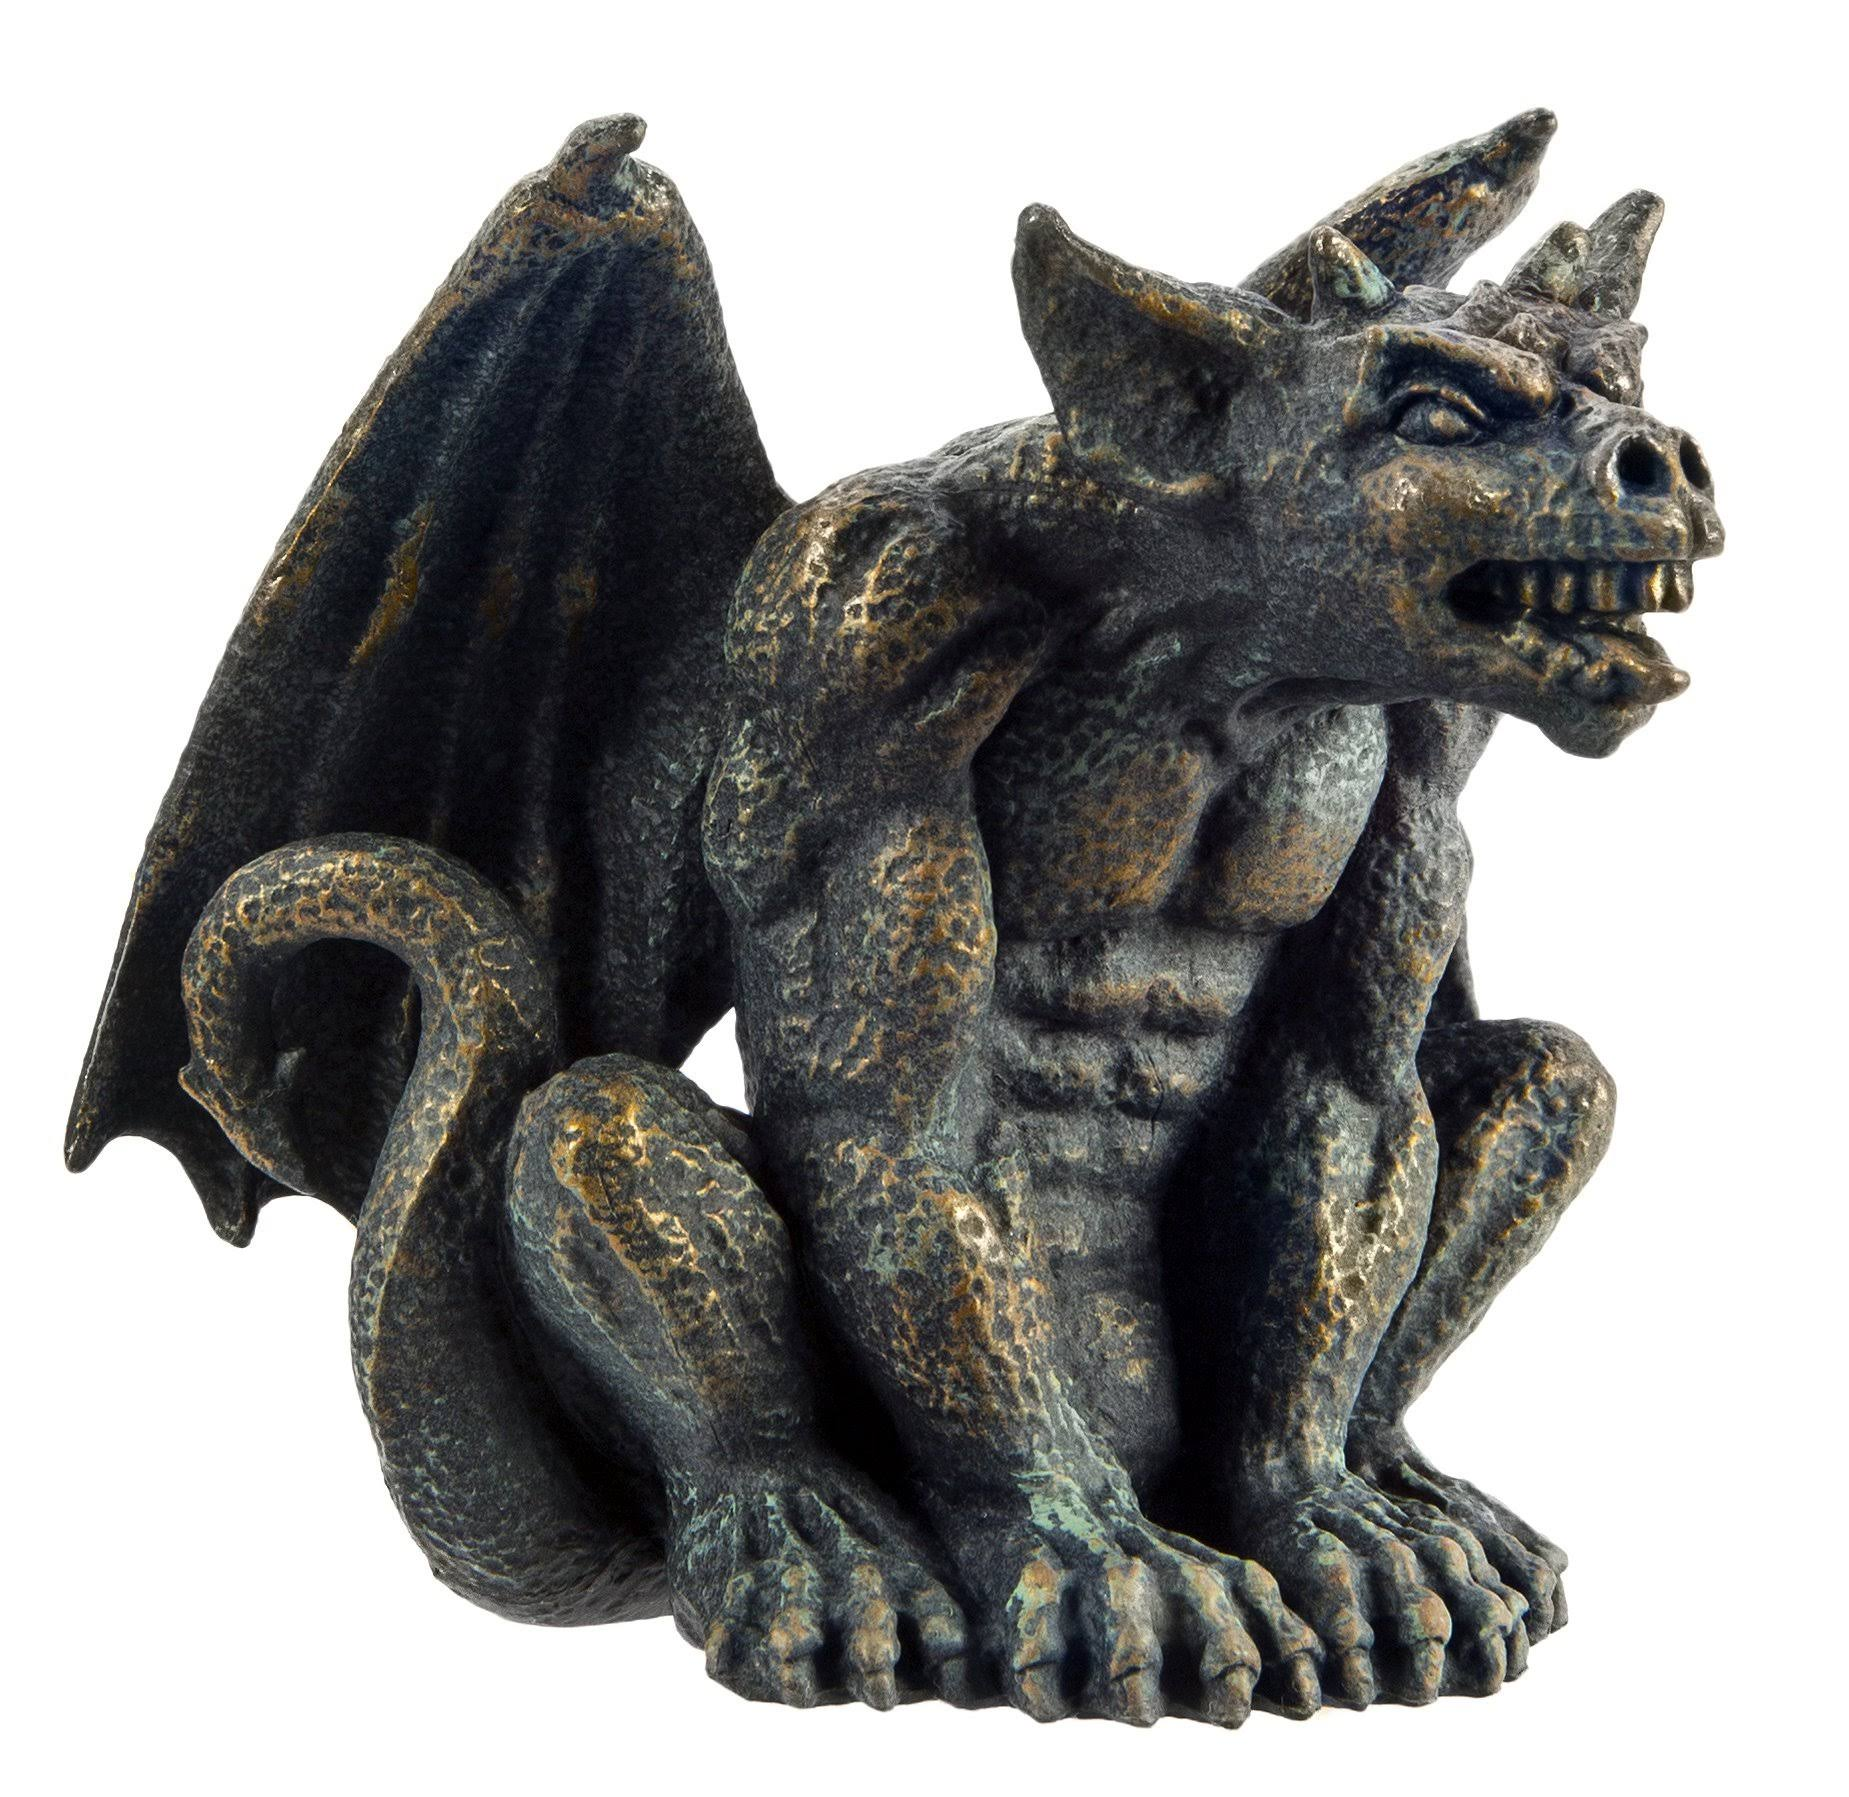 Safari Ltd 803629 Mythical Realms Gargoyle